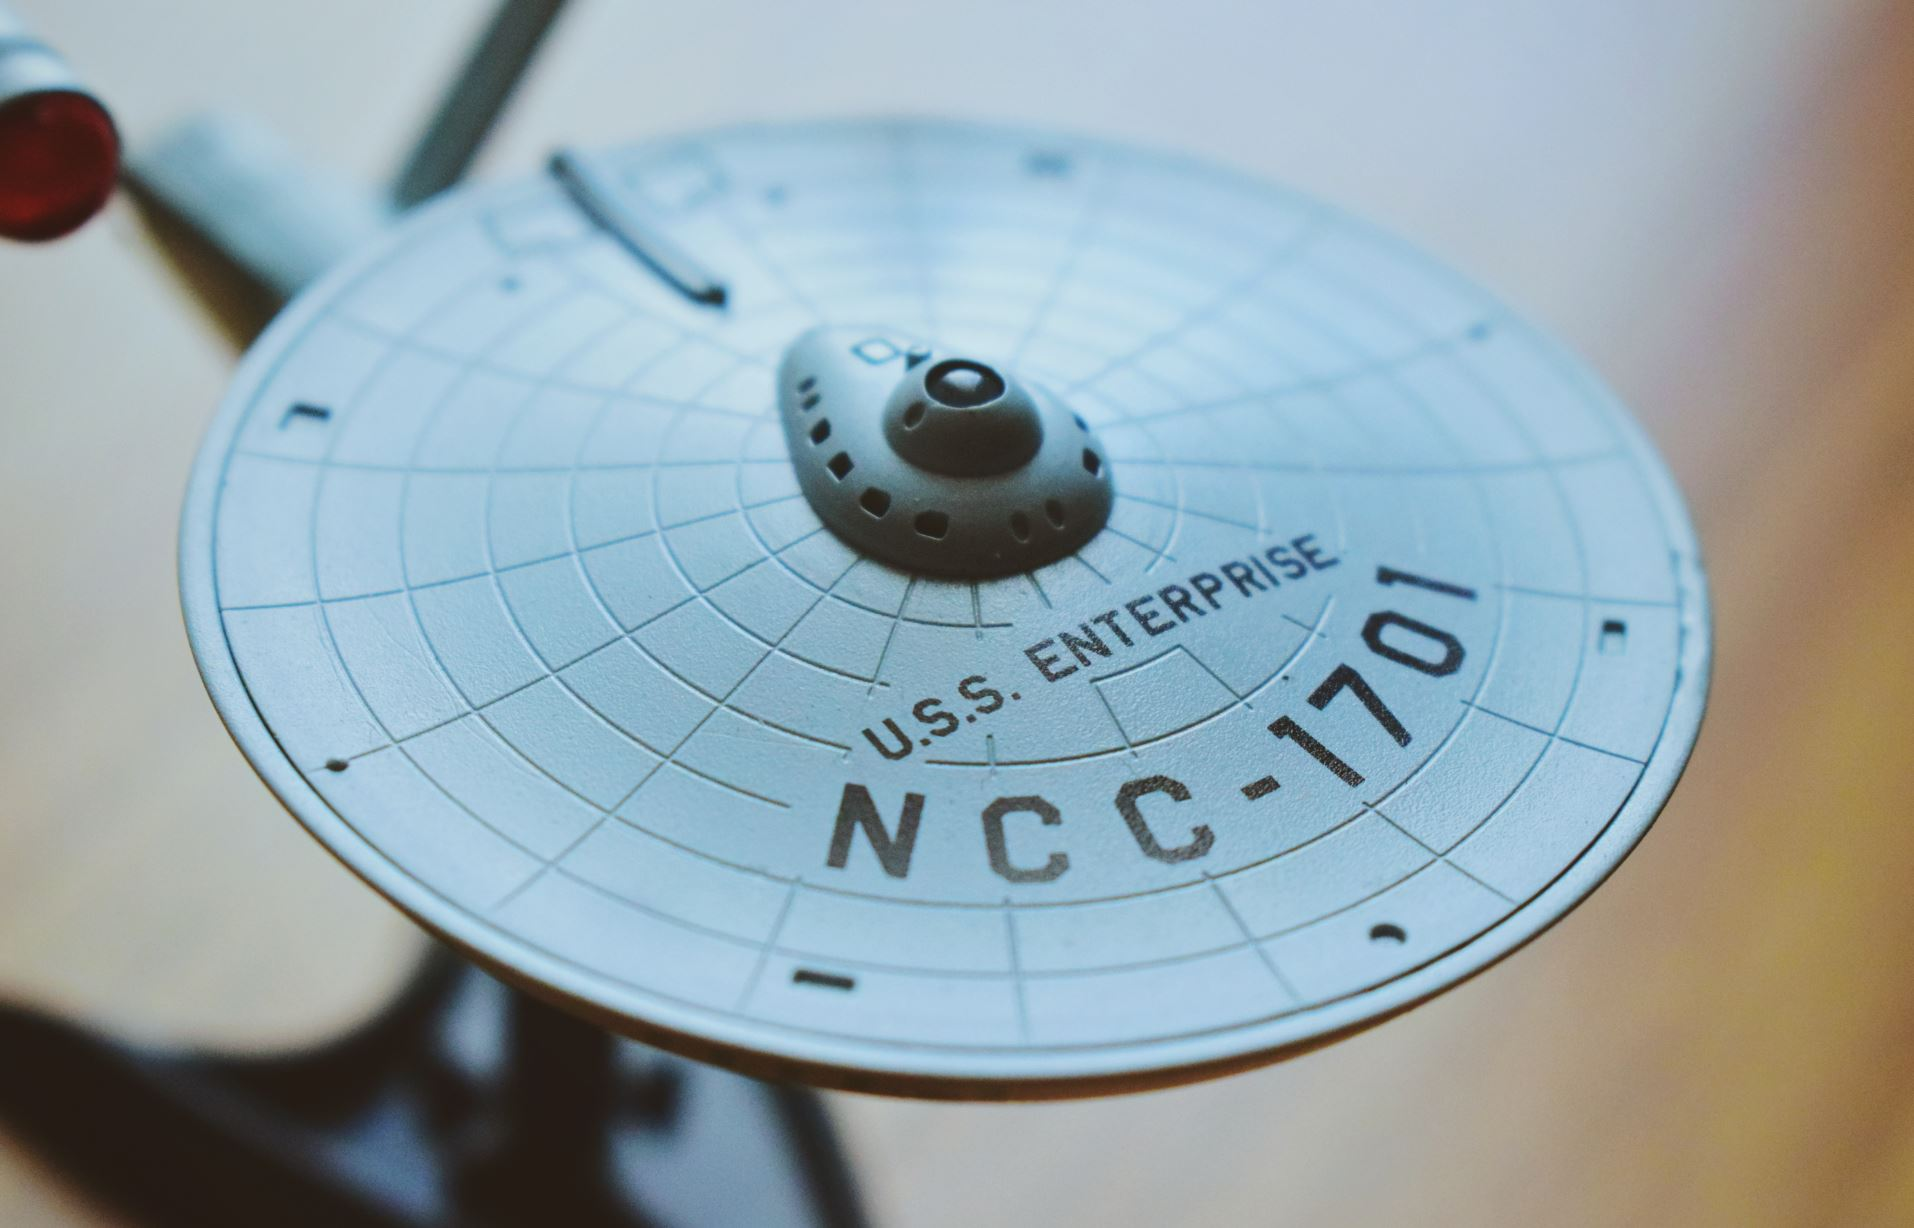 The TV show Star Trek contains lessons for sustainable and inclusive innovation - Image Credit:  Stefan Cosma - via unsplash